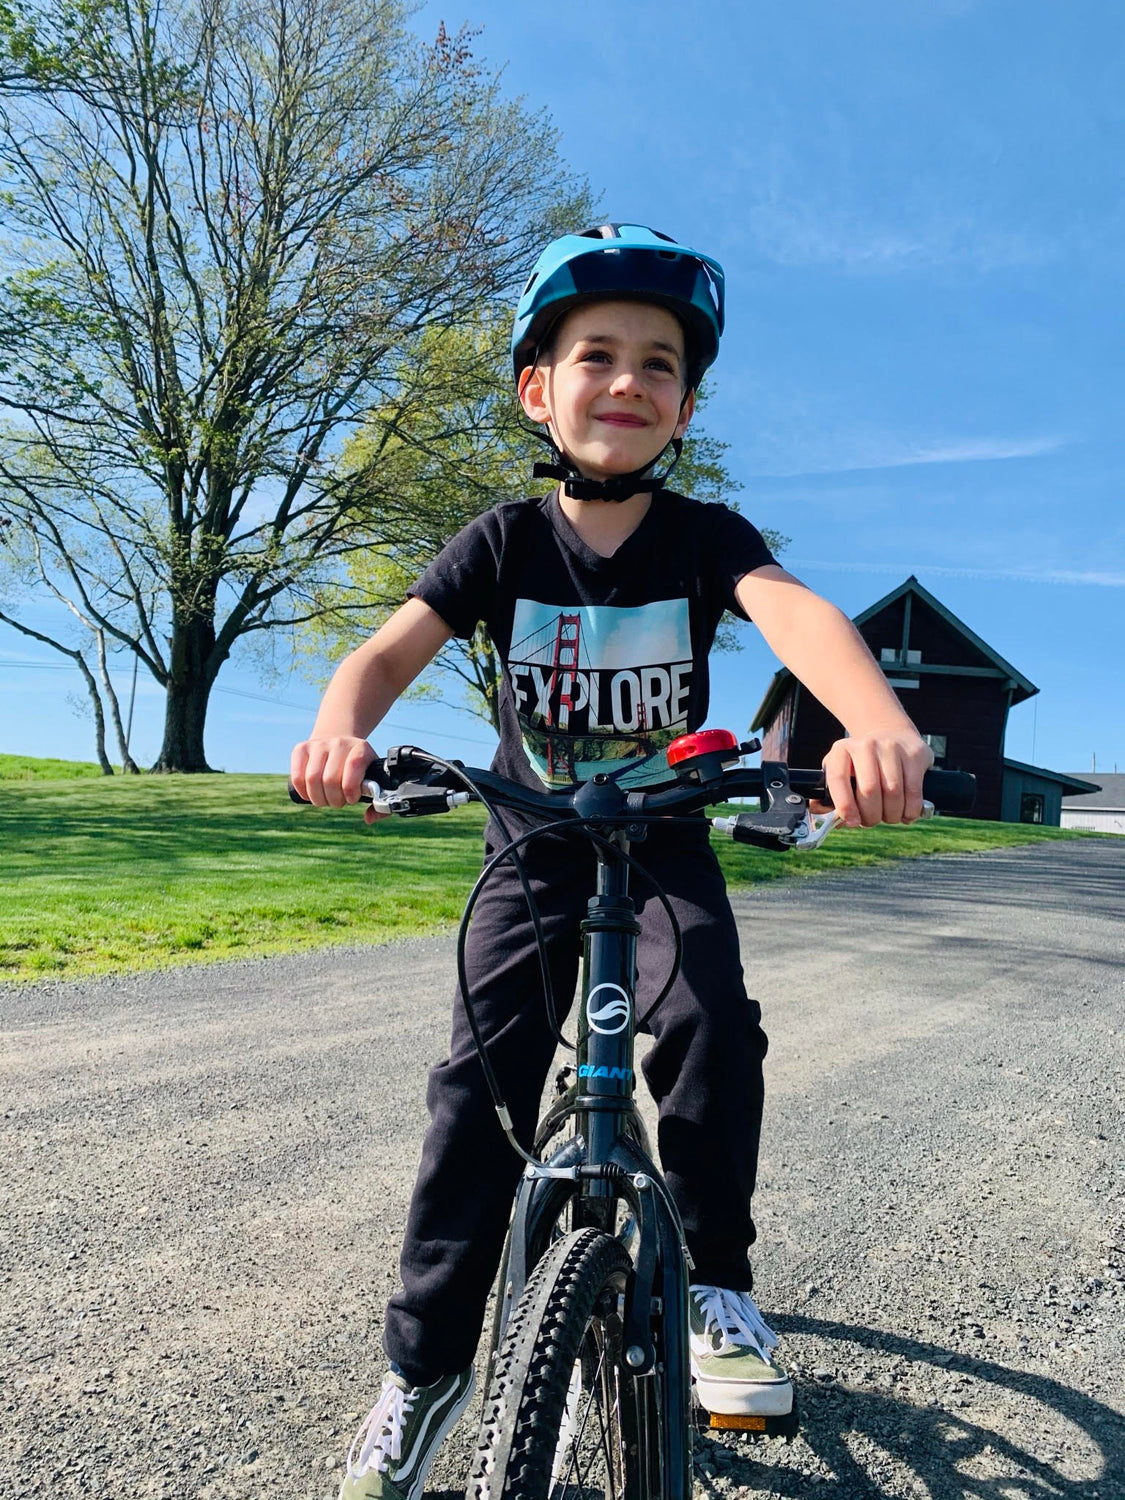 Young Kid riding his bike with a Lazer bike helmet